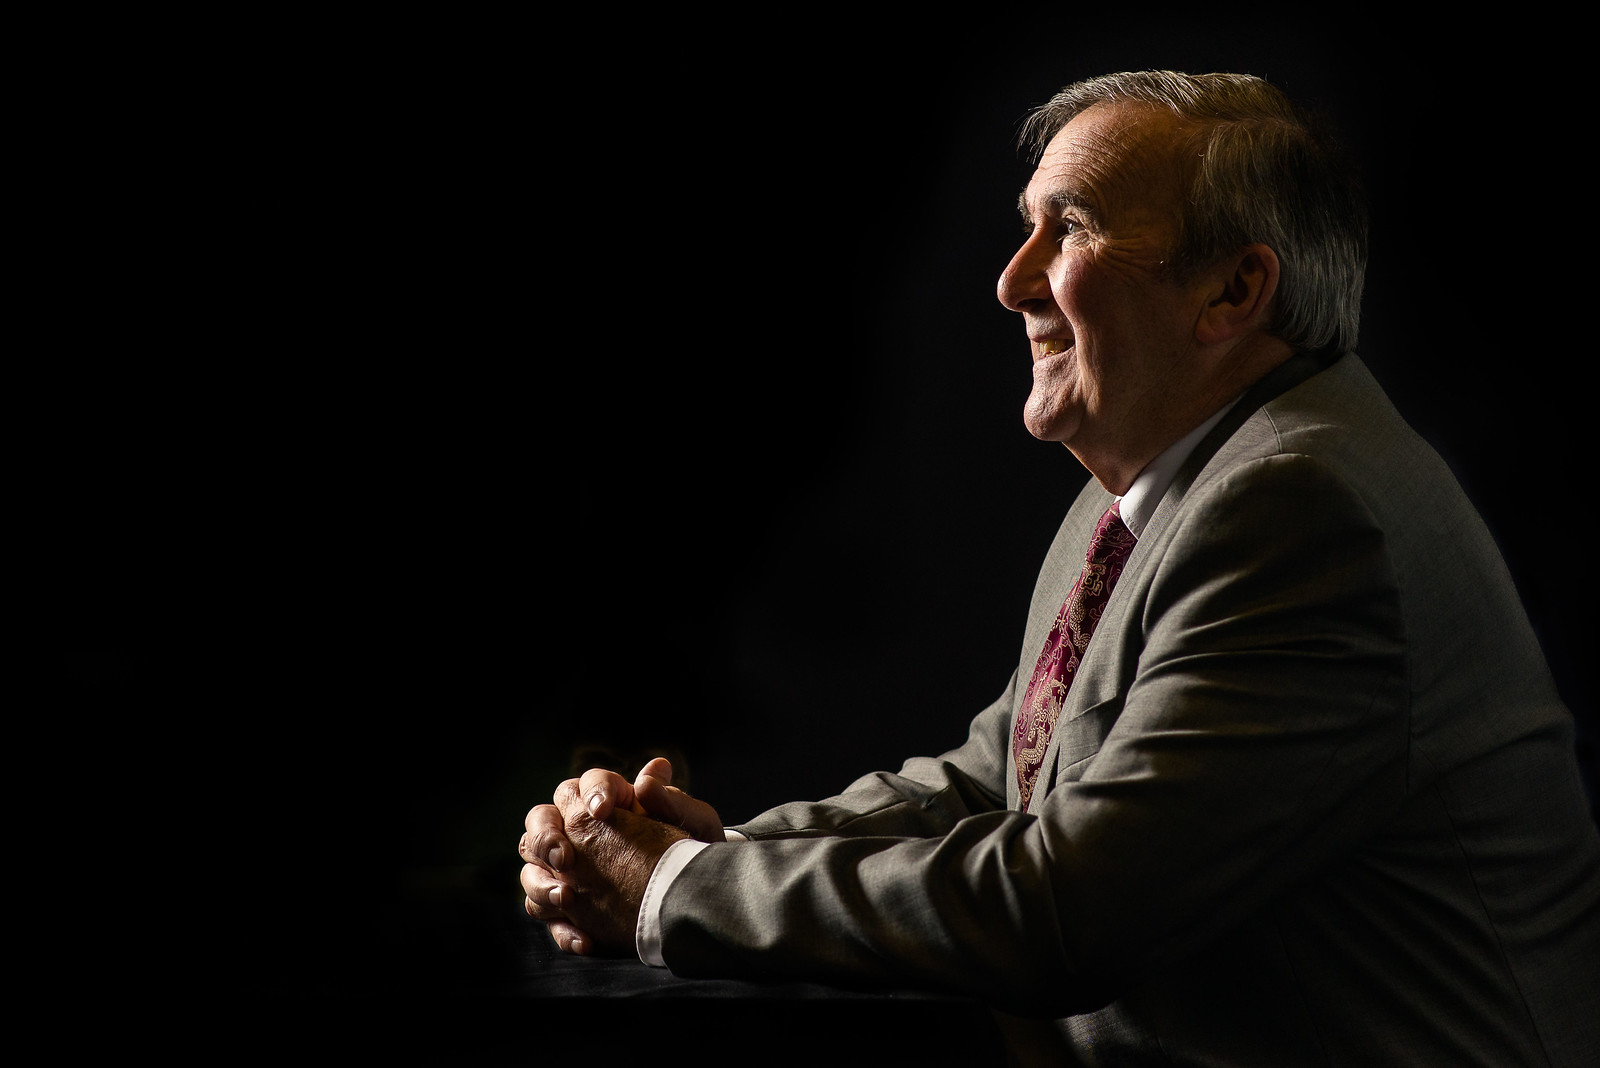 Gervase Phinn, Author and Public Speaker